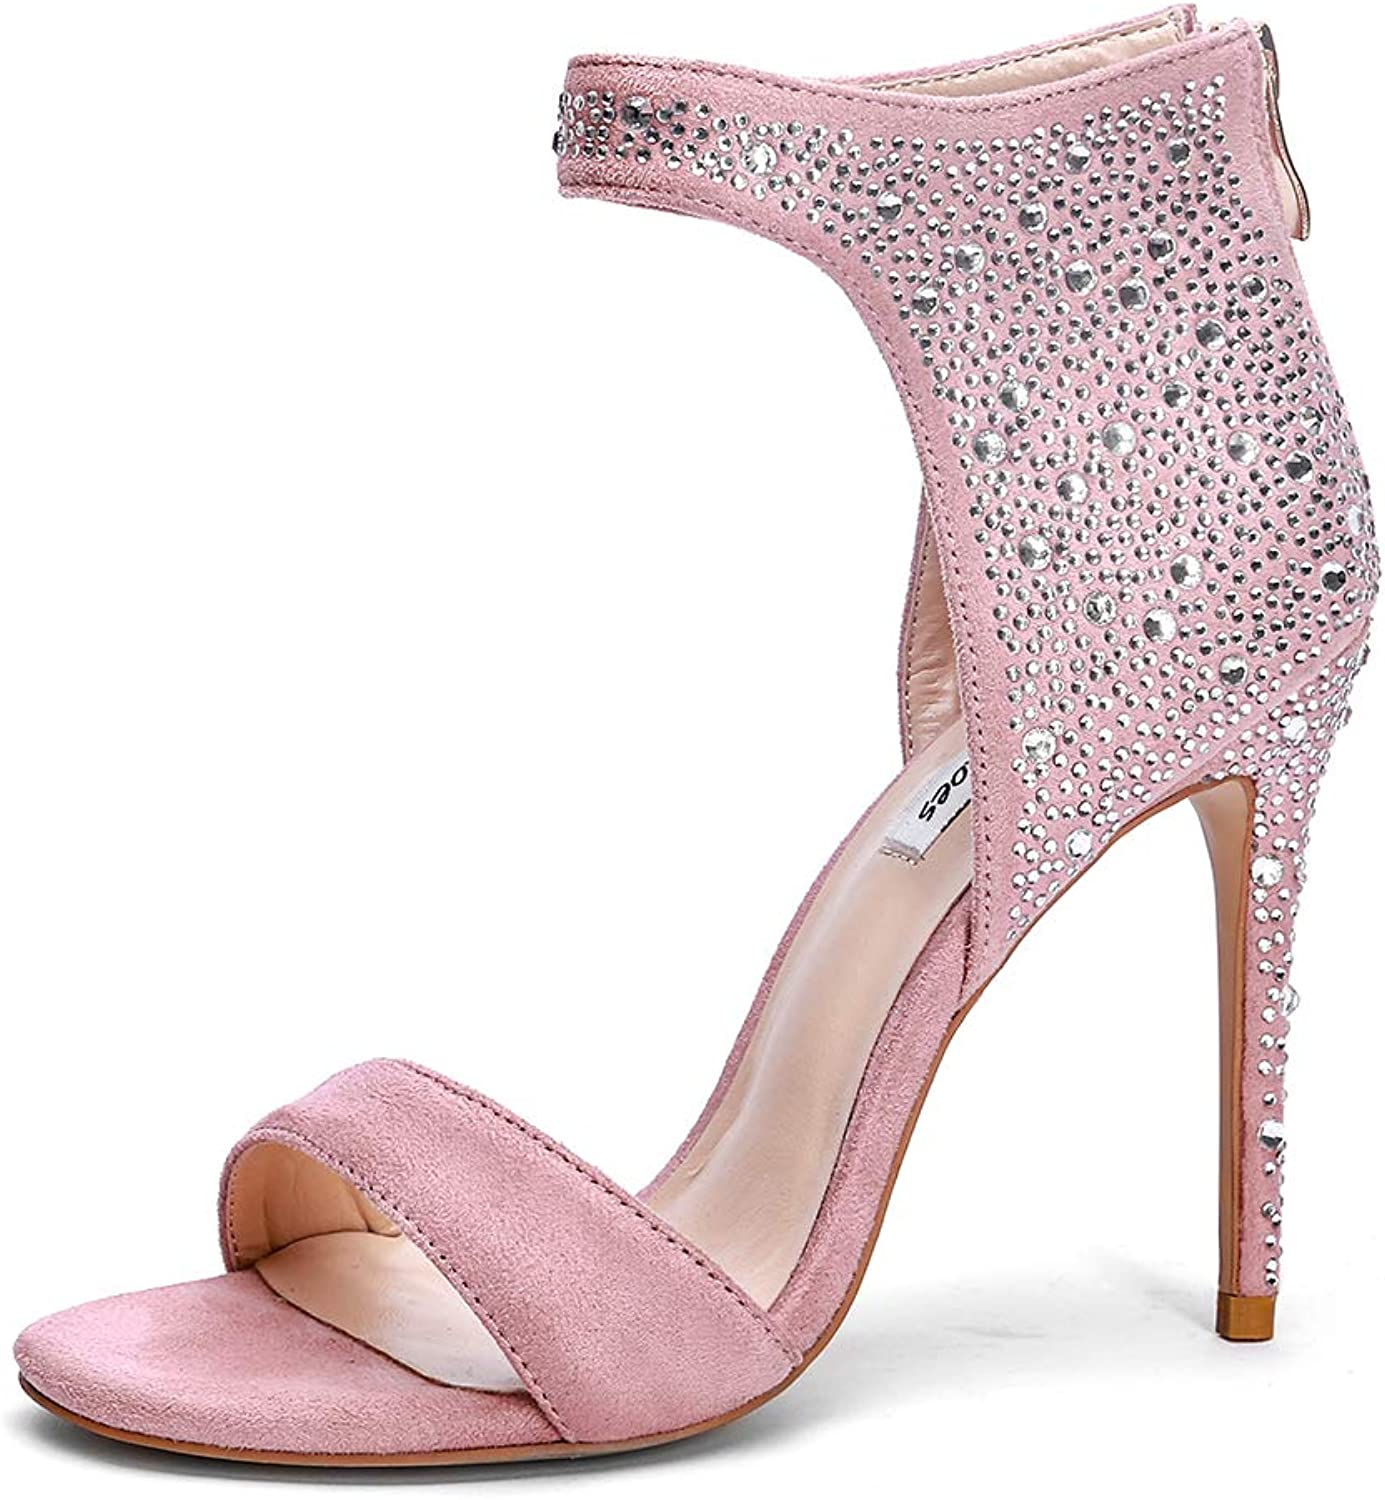 XDLEX Women Suede Strappy Glittery Heeled Sandals Stiletto One Strap Ankle Wrap Around Cover Open Toe Gothic Crystal Pumps with Rhinestone Cover Heel shoes